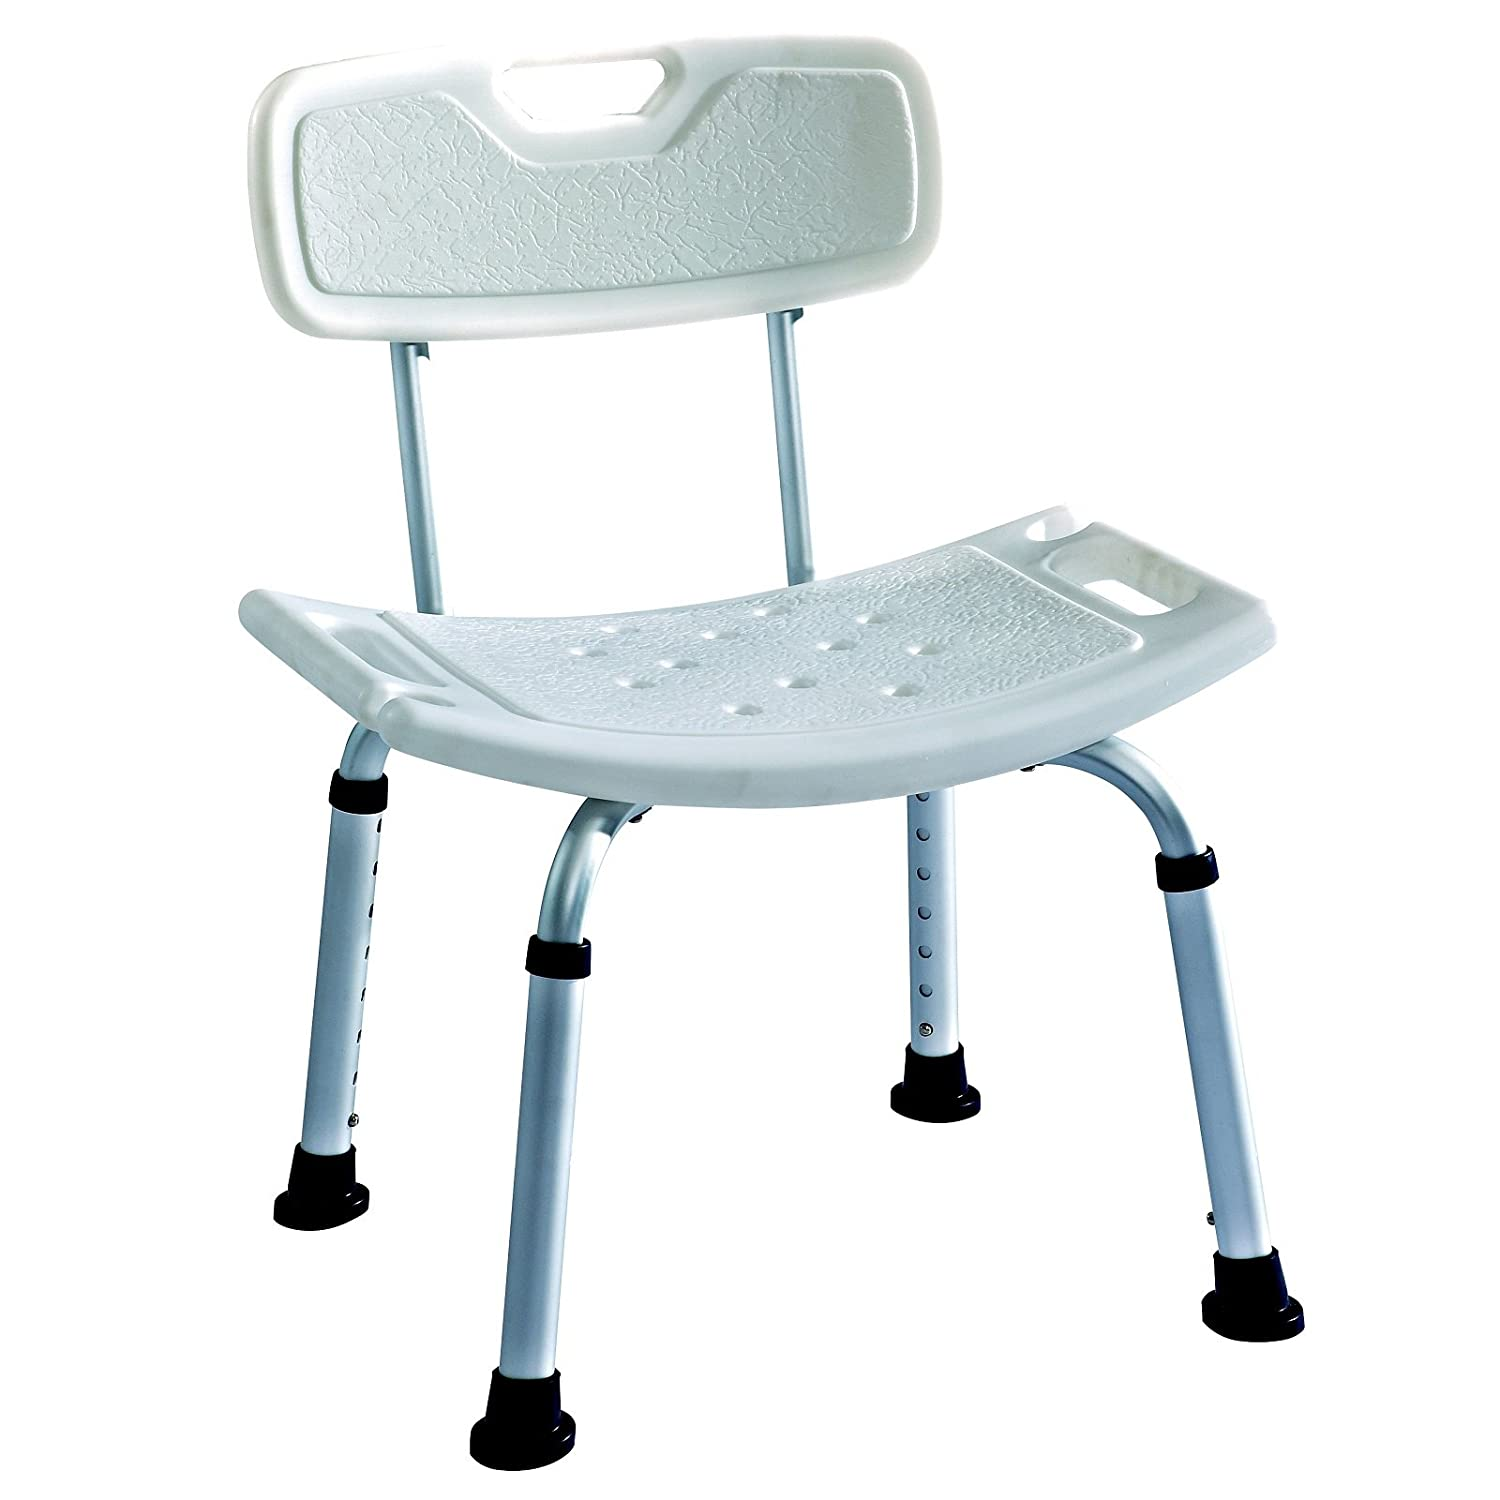 Amazon.com: Elite Care ECSS02 Bath bench shower seat with back ...